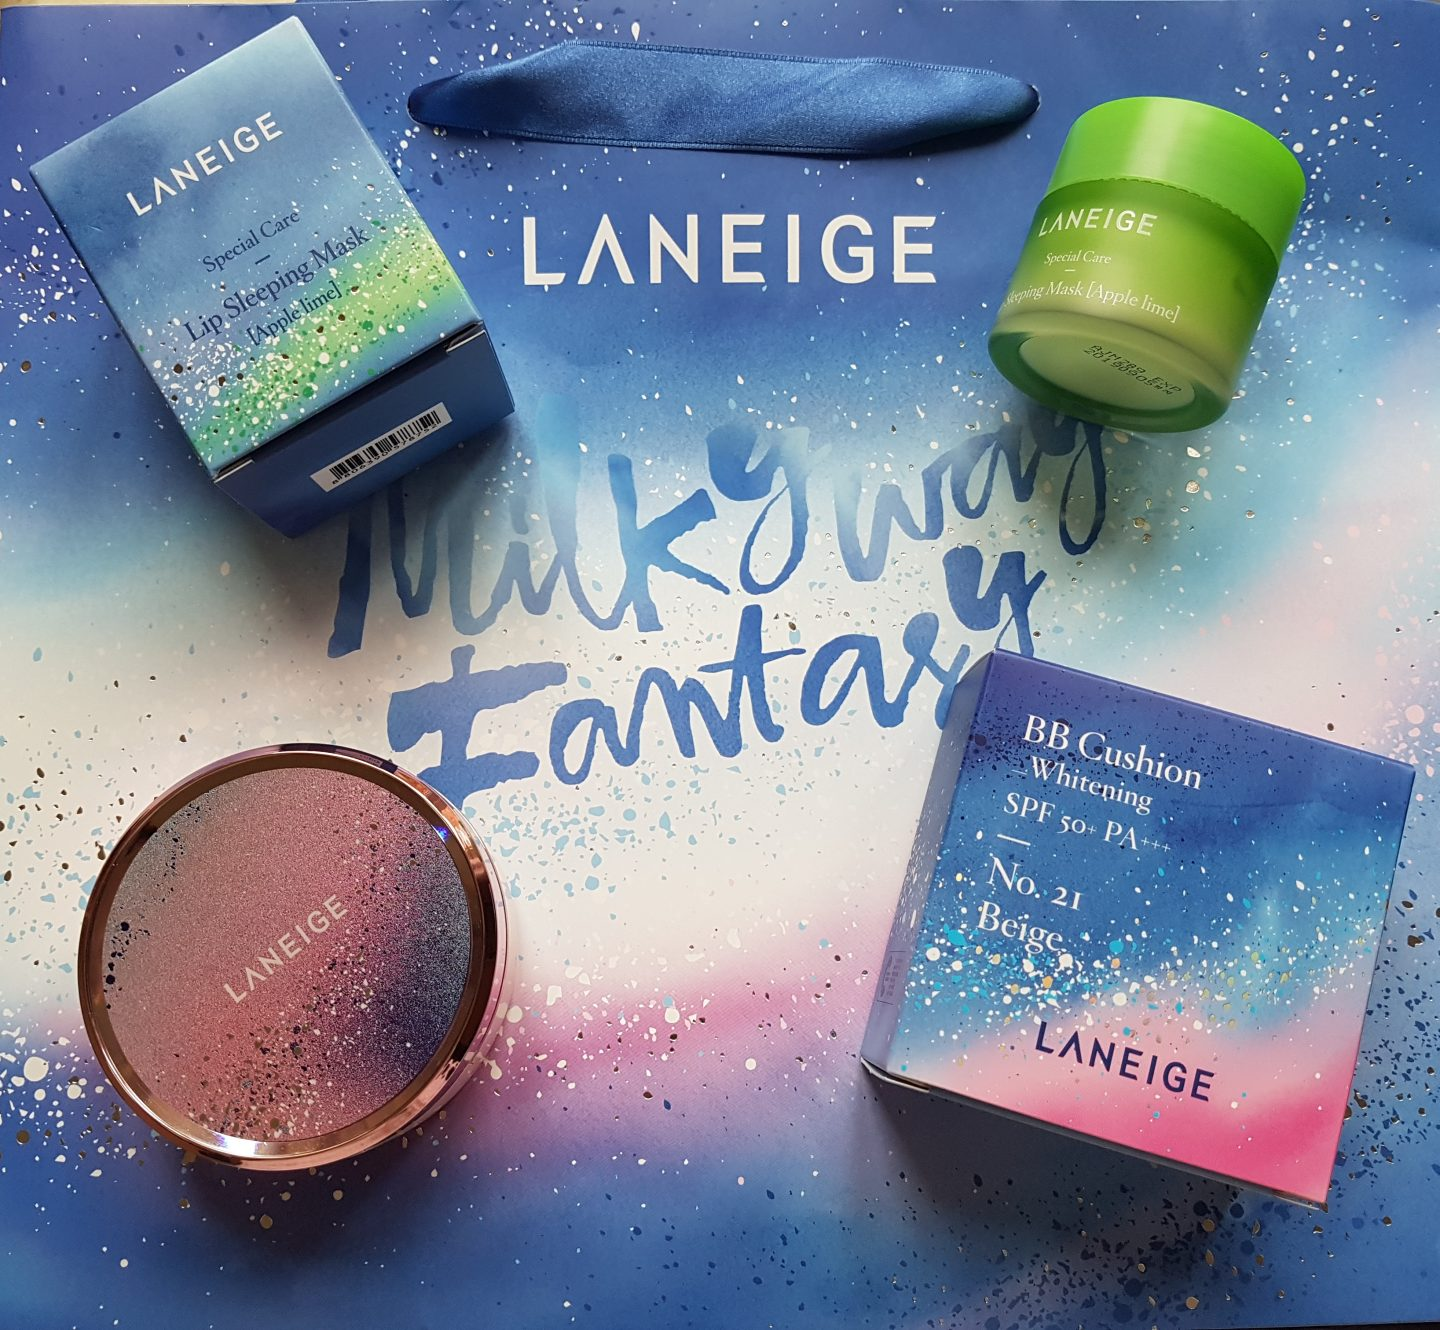 LANEIGE Milkyway Fantasy 2016 Holiday Collection – BB Cushion + Lip Sleeping Mask